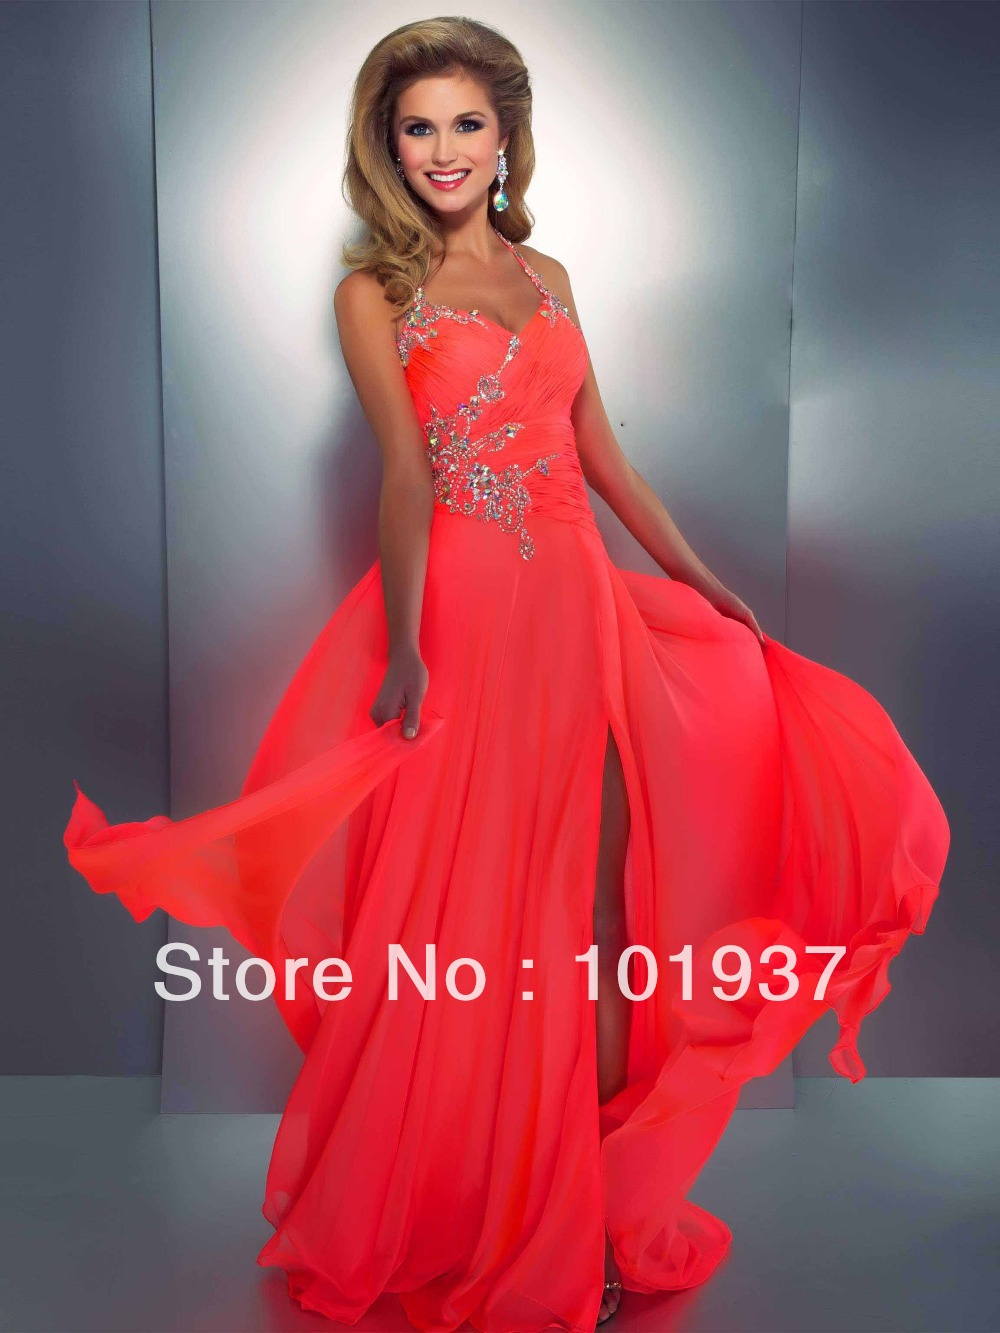 Aliexpress.com : Buy Wholesale Coral Evening Dress Halter Crystal ...